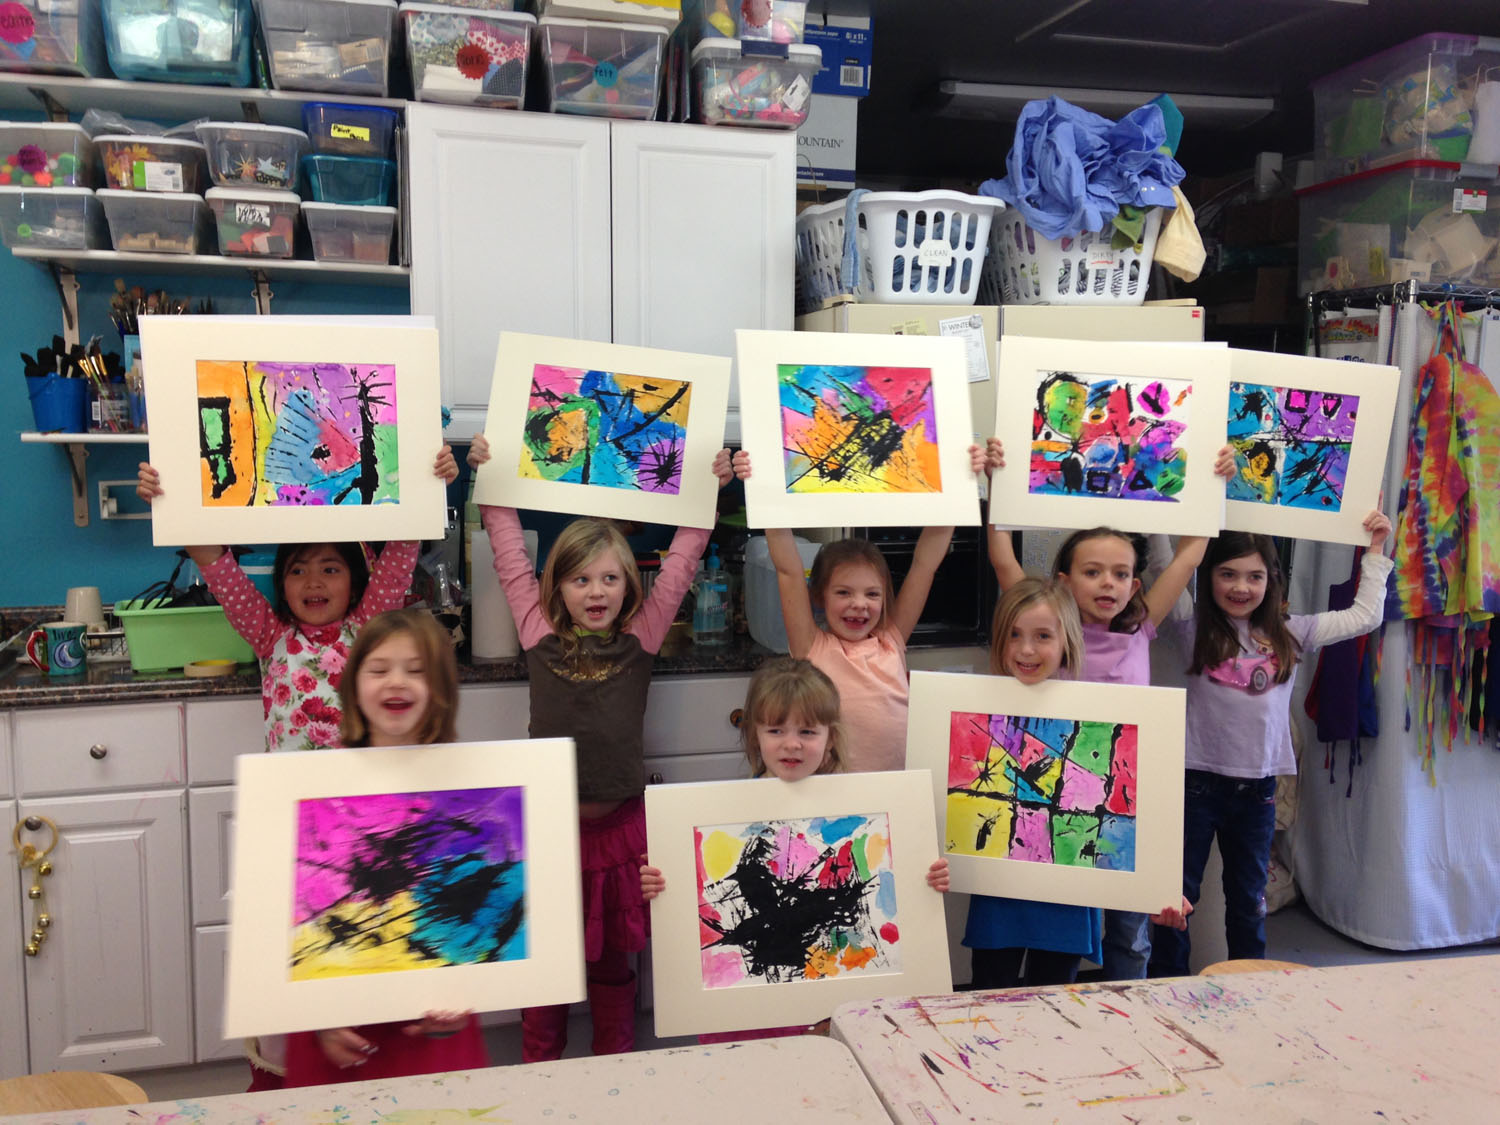 kids-showing-off-artwork-at-art-by-tjm-studio-greensboro-img_0772.jpg